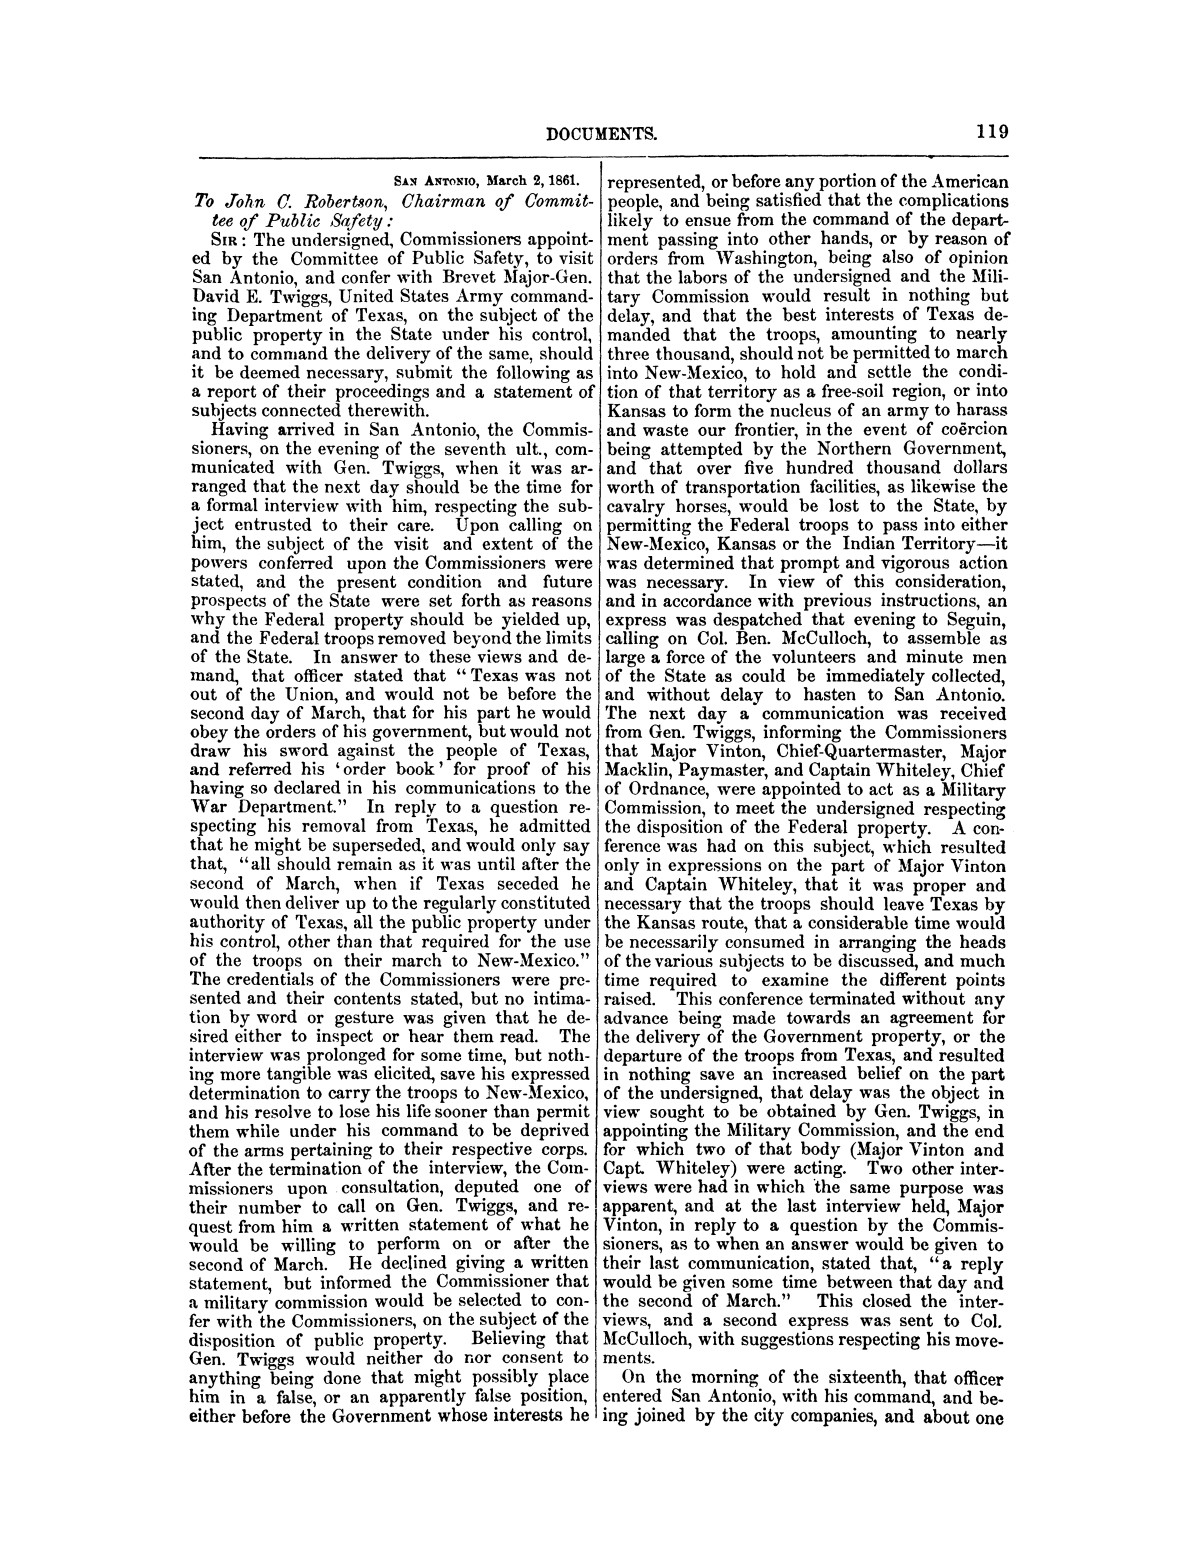 The treachery in Texas, the secession of Texas, and the arrest of the United States officers and soldiers serving in Texas. Read before the New-York Historical Society, June 25, 1861. By Major J. T. Sprague, U. S. A.                                                                                                      [Sequence #]: 13 of 36